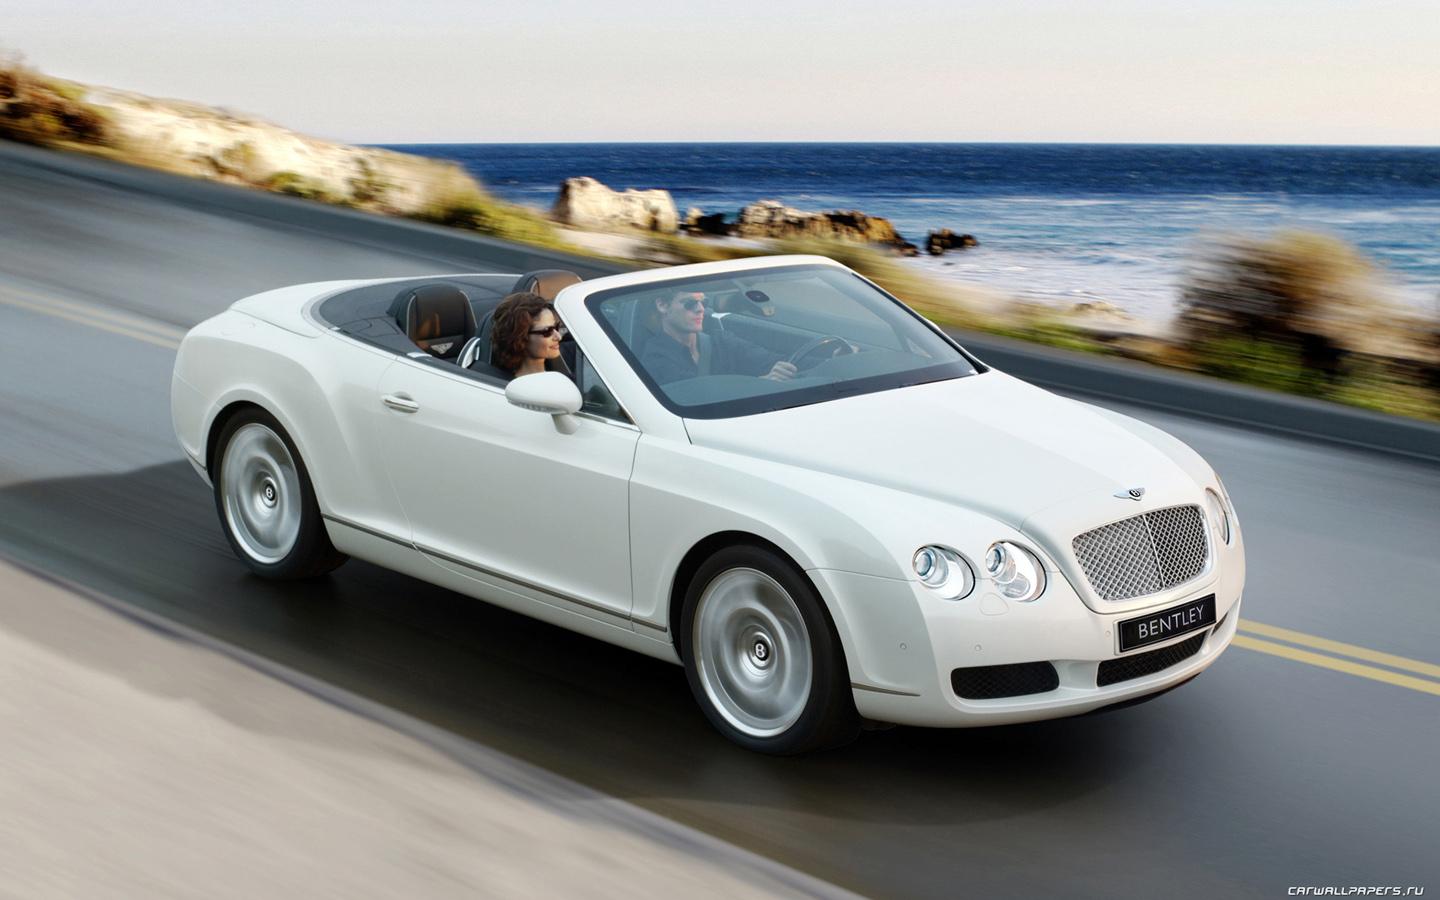 2006 Bentley Continental GTC Convertible 2-door